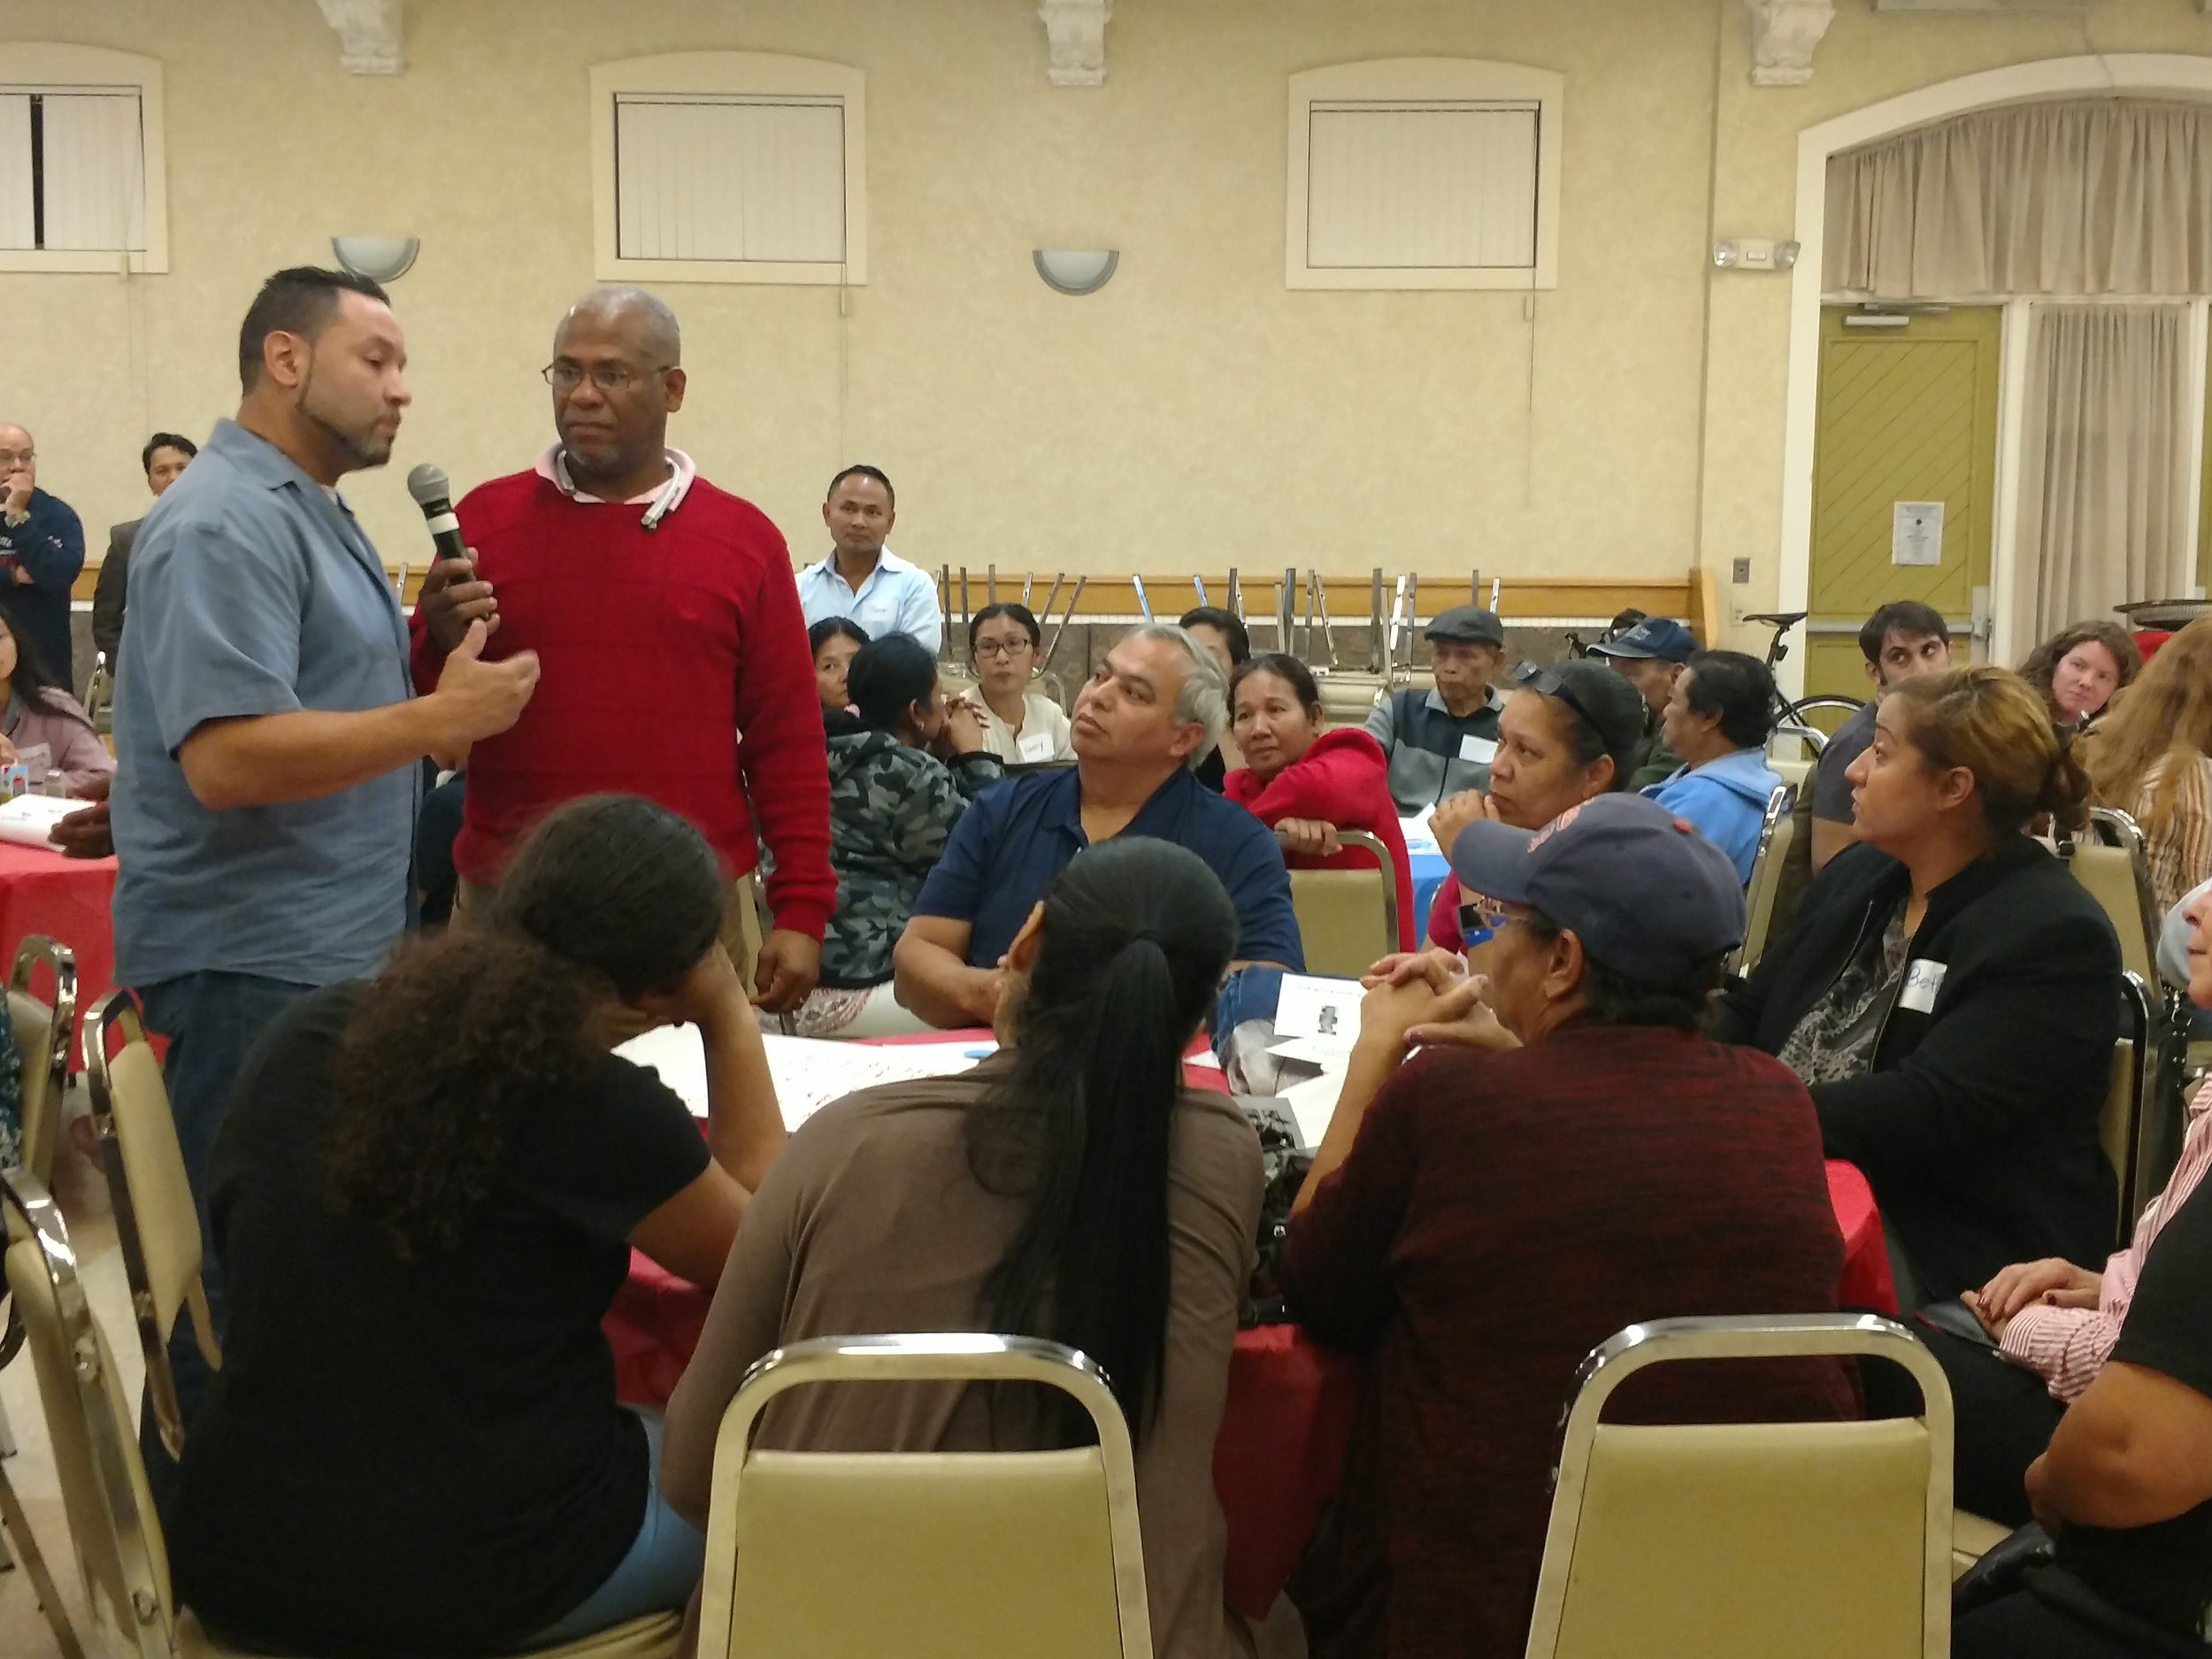 Residents gather to discuss Lowell's current voting system and the voting rights lawsuit filed against the city.